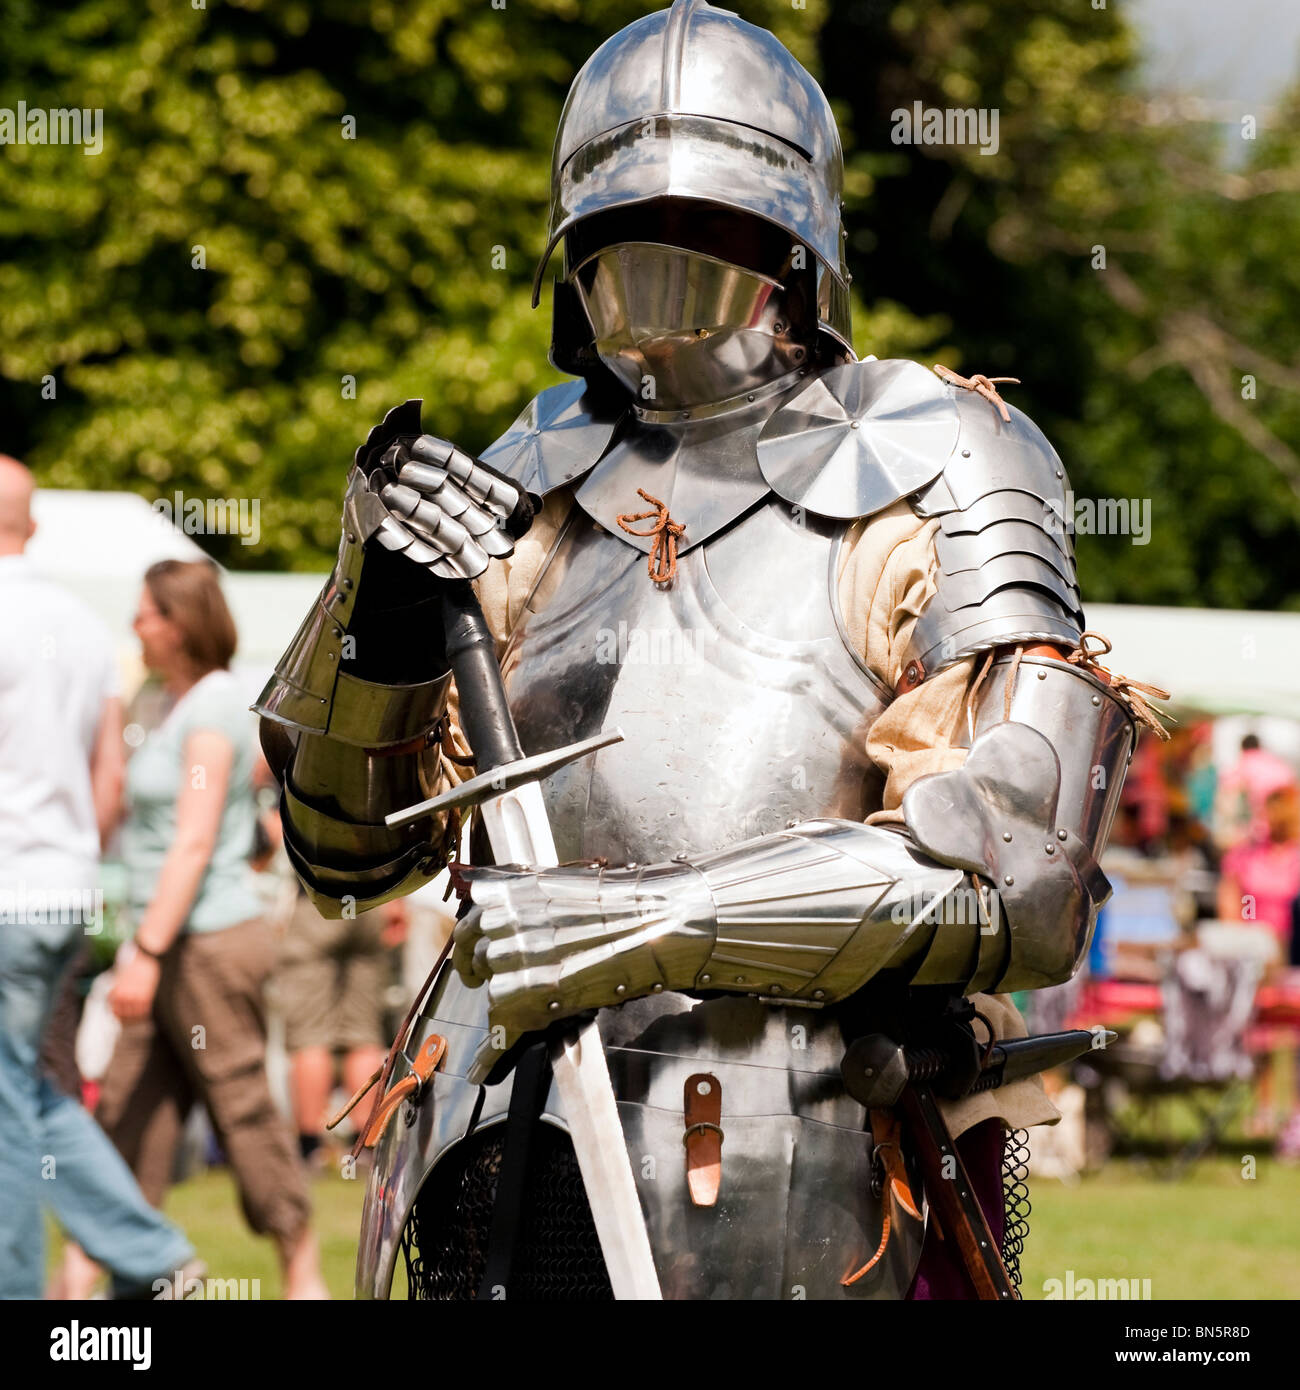 Man wearing suit of armor at the Castle Green, Hereford, UK. Medieval reenactment knight with a broadsword. - Stock Image